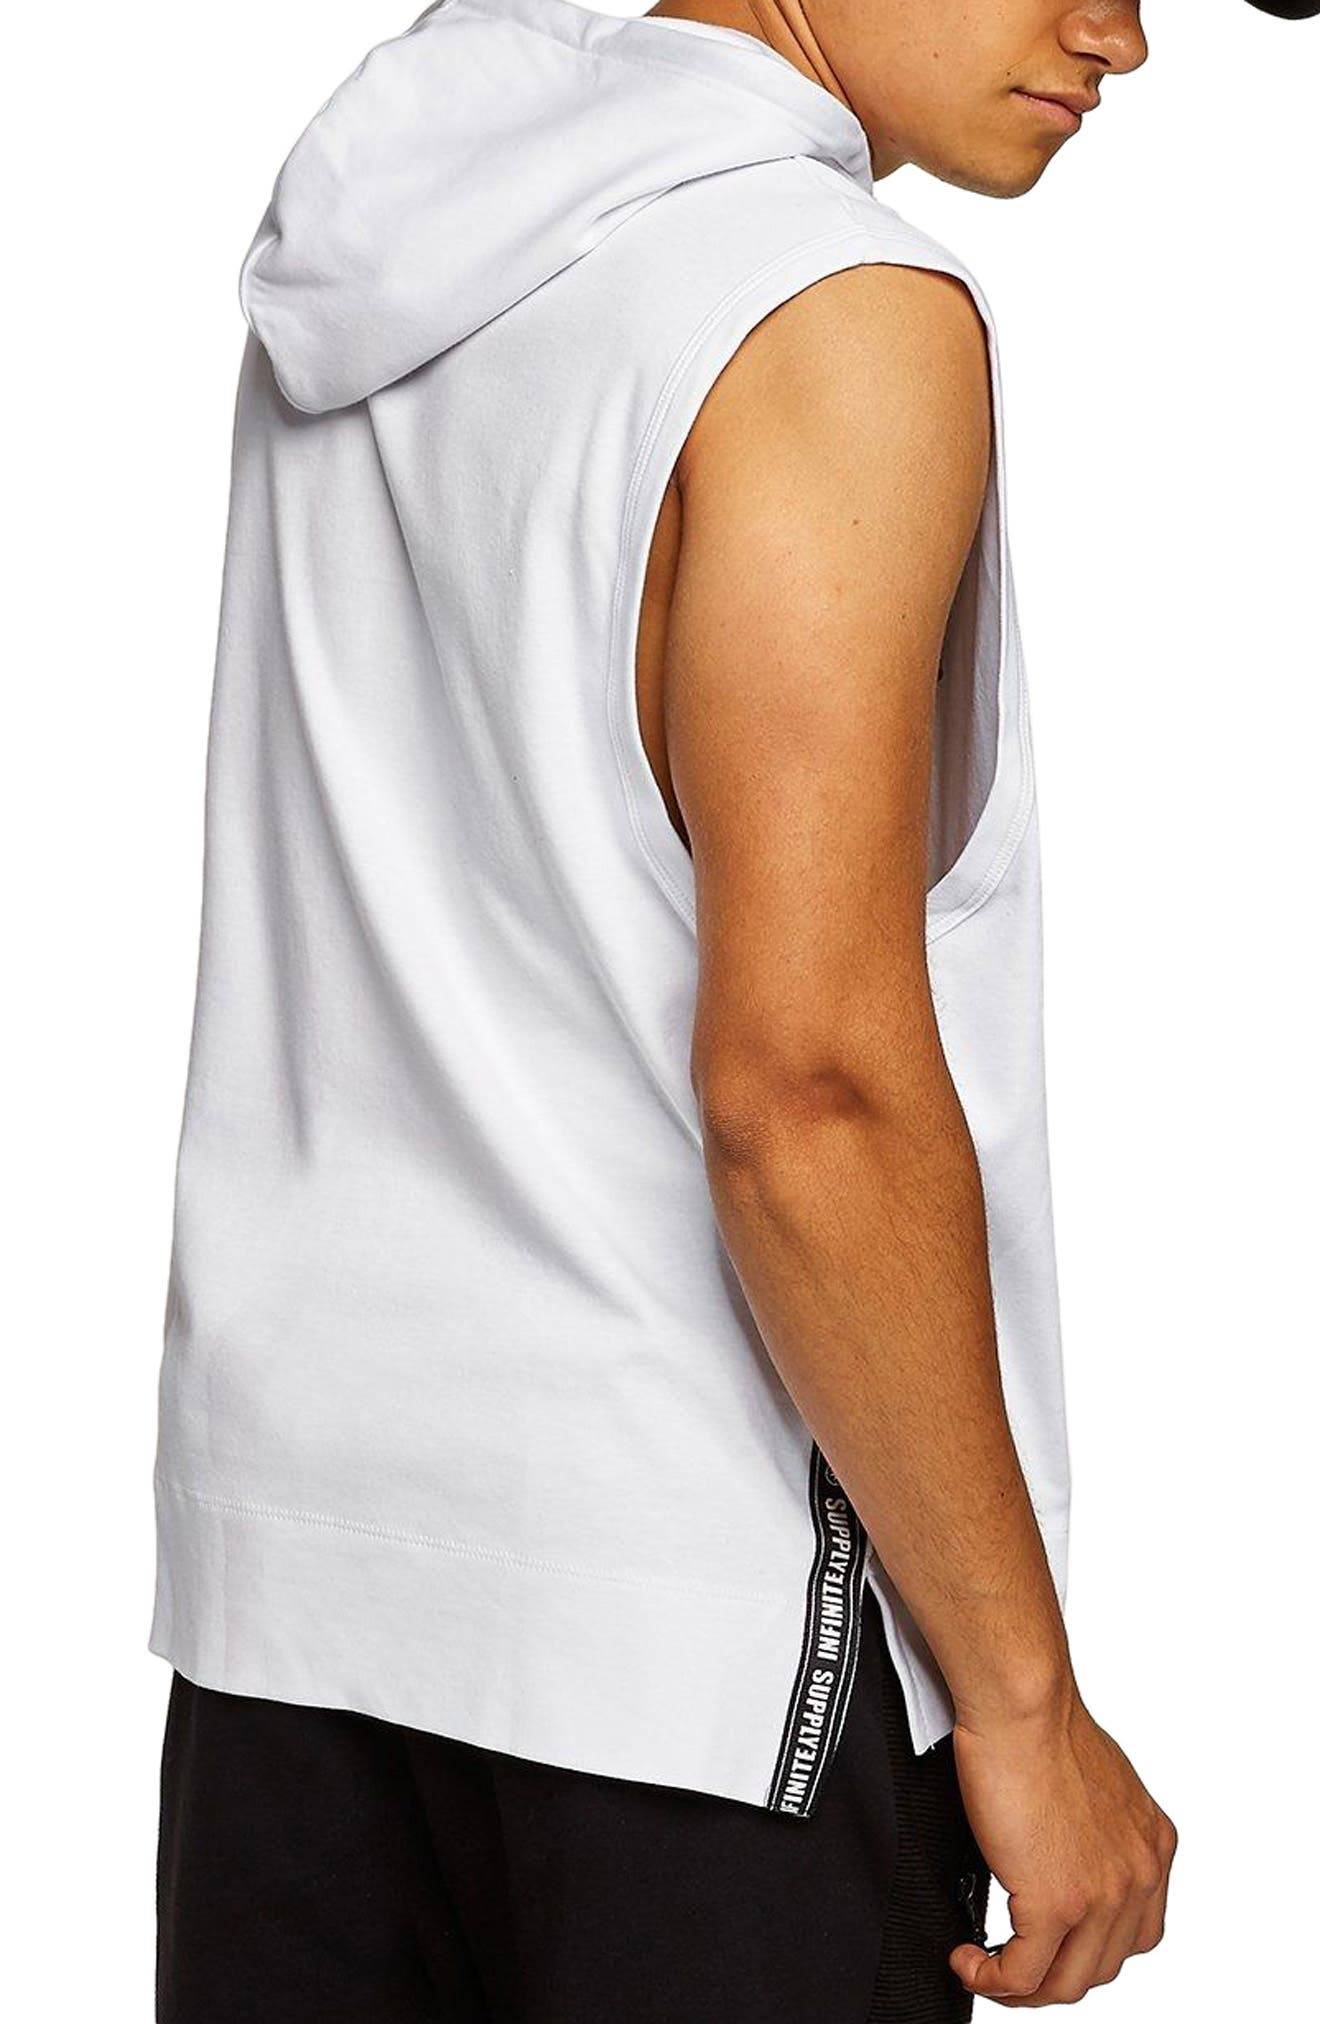 Classic Fit Taped Sleeveless Hoodie,                             Alternate thumbnail 2, color,                             White Multi